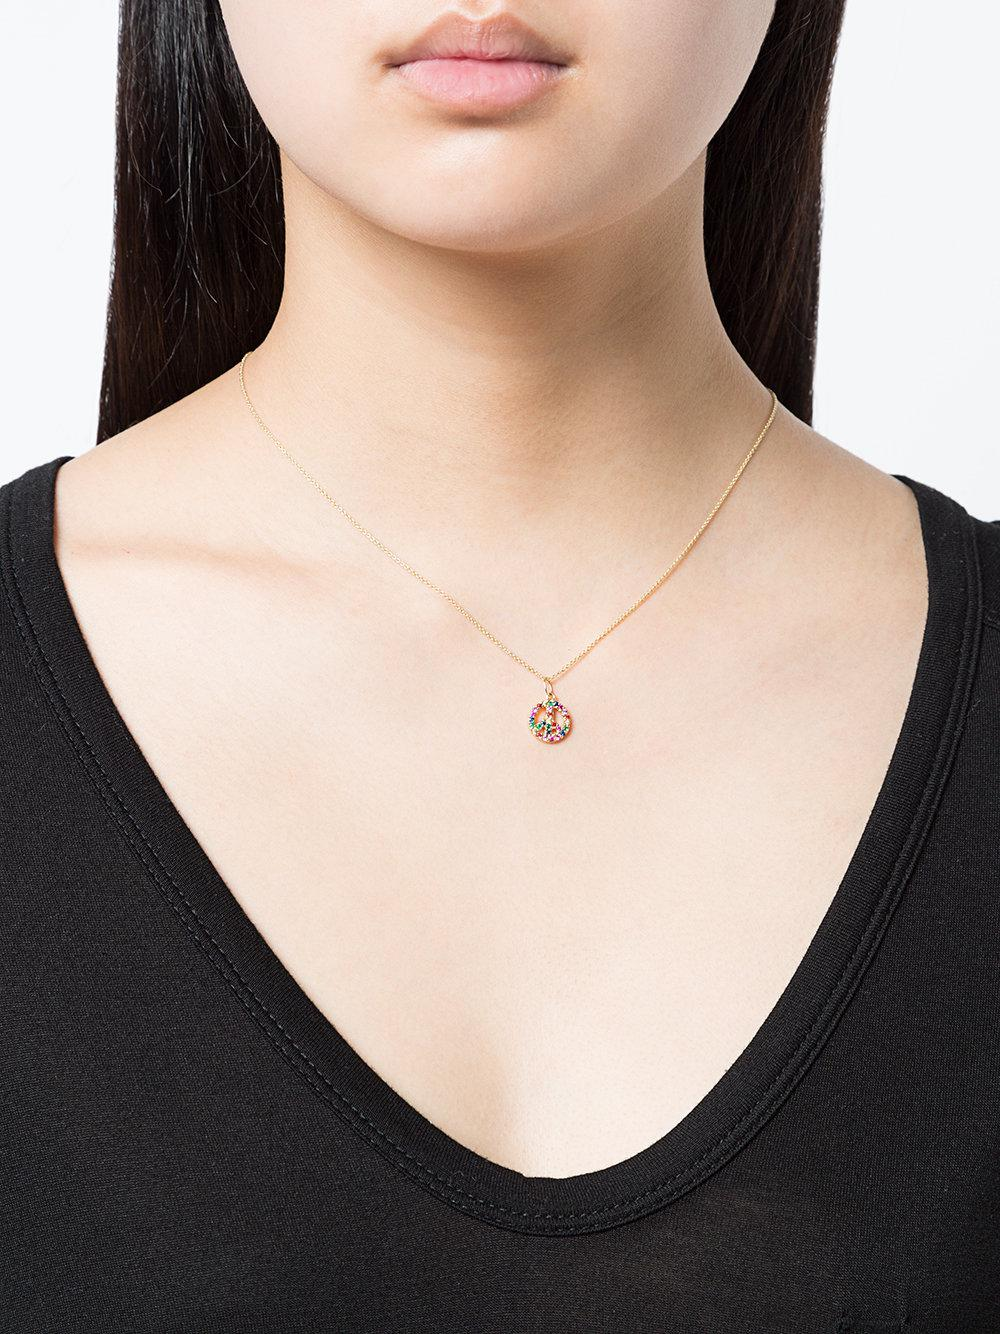 Sydney Evan Small 14kt Yellow Gold Gemstone Peace Necklace in Metallic